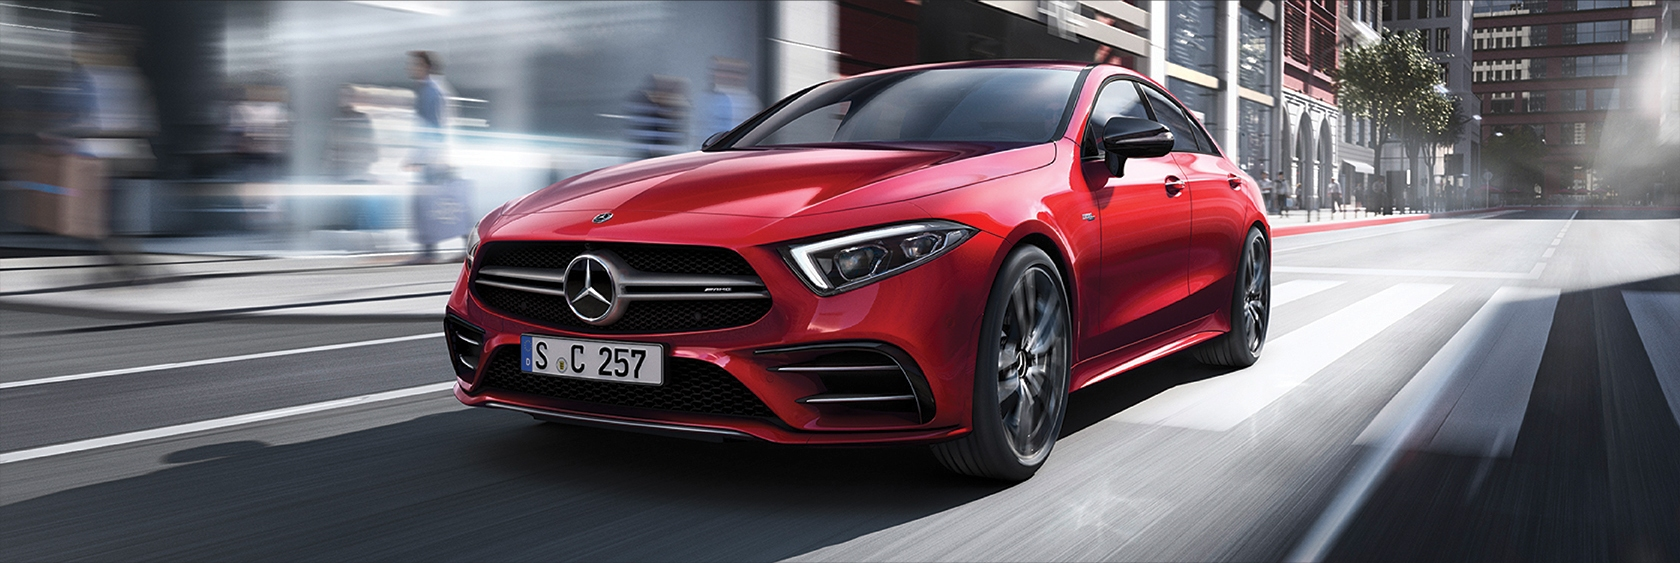 Mercedes-Benz Caribbean: News